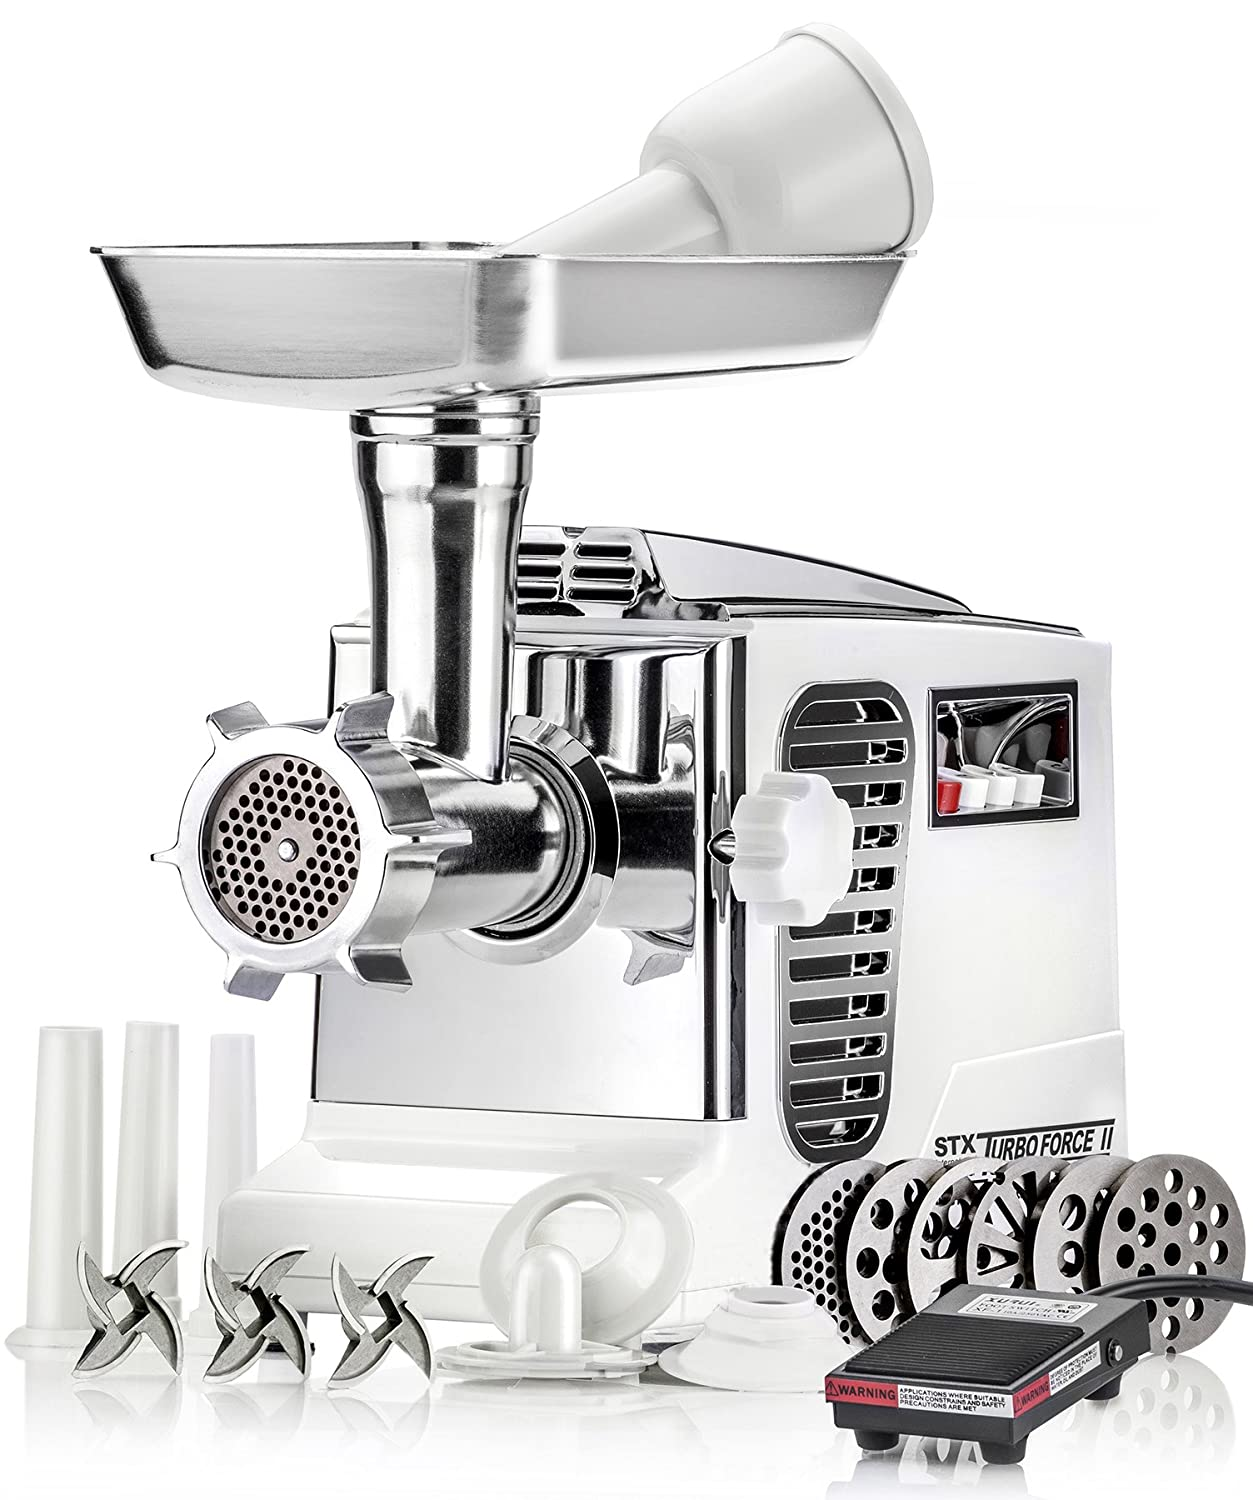 Electric Meat Grinder - Size #12 - Model STX-4000-TB2-PD - STX International Turboforce II - Air Cooling Patent - Foot Pedal Control, 6 Grinding Plates, 3 Cutting Blades, Kubbe & Sausage Tubes - Black STX-4000-TB2-PD-BL